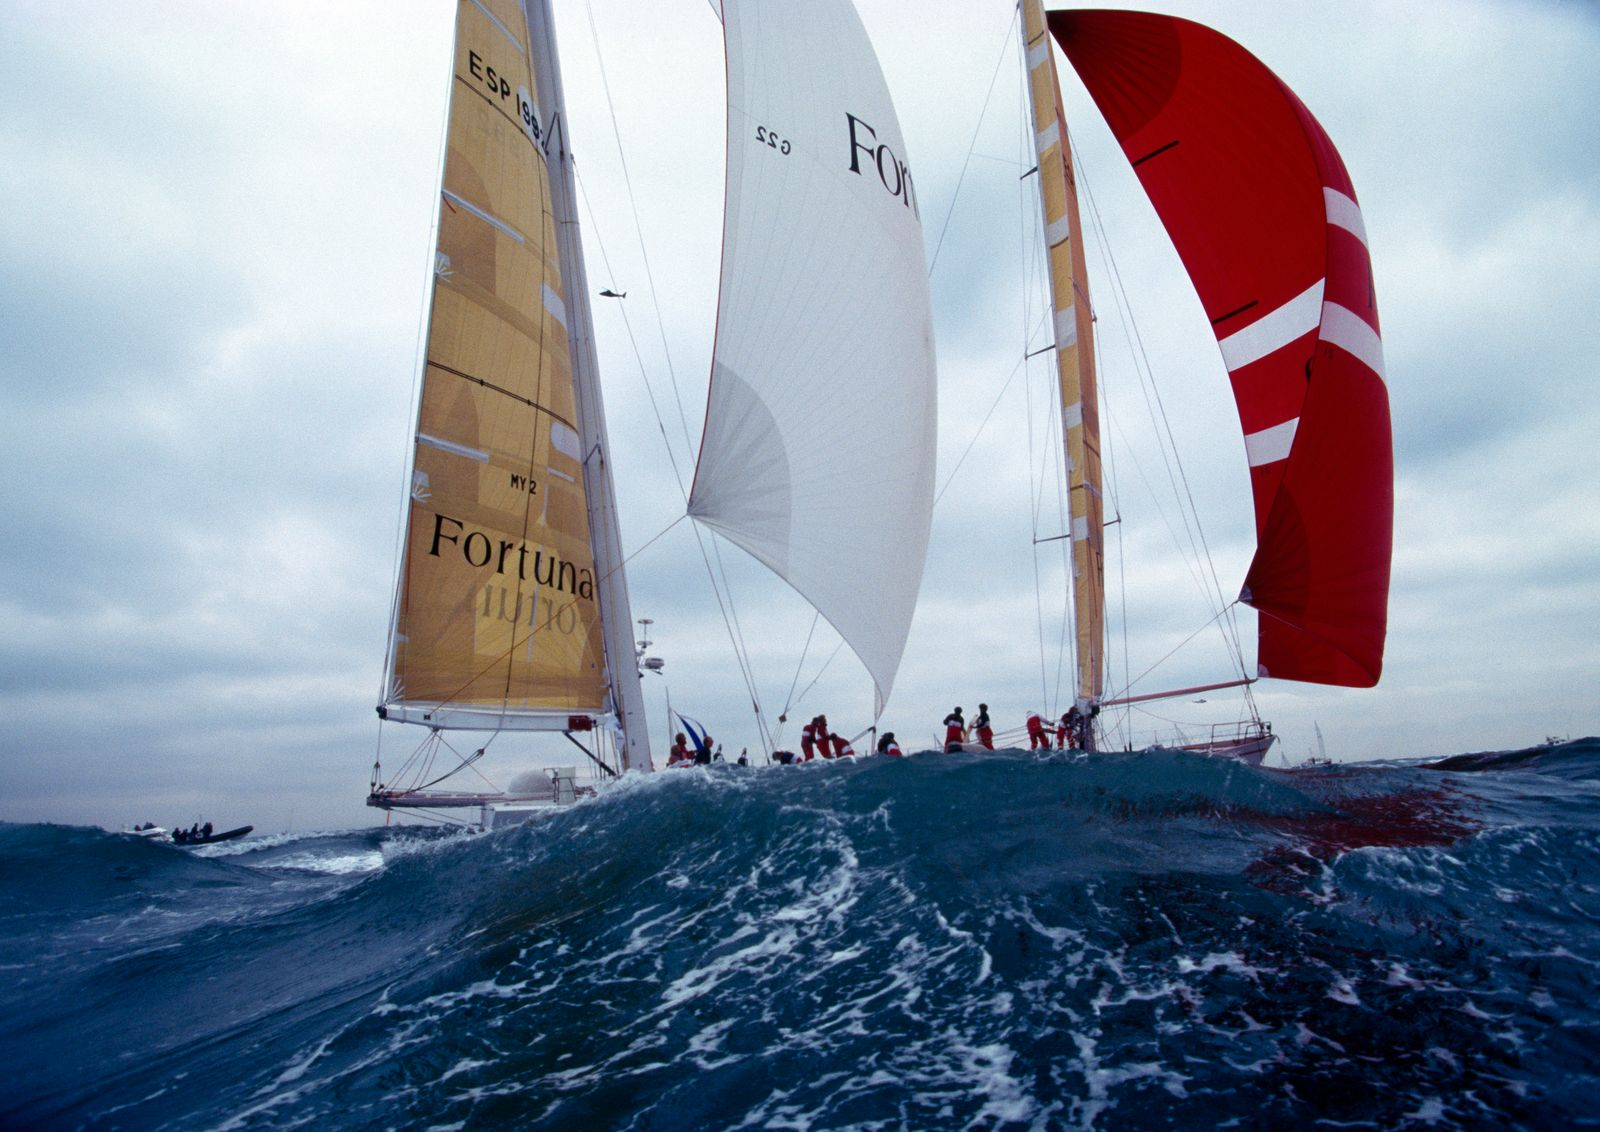 Whitbread Round The World Race - Fortuna